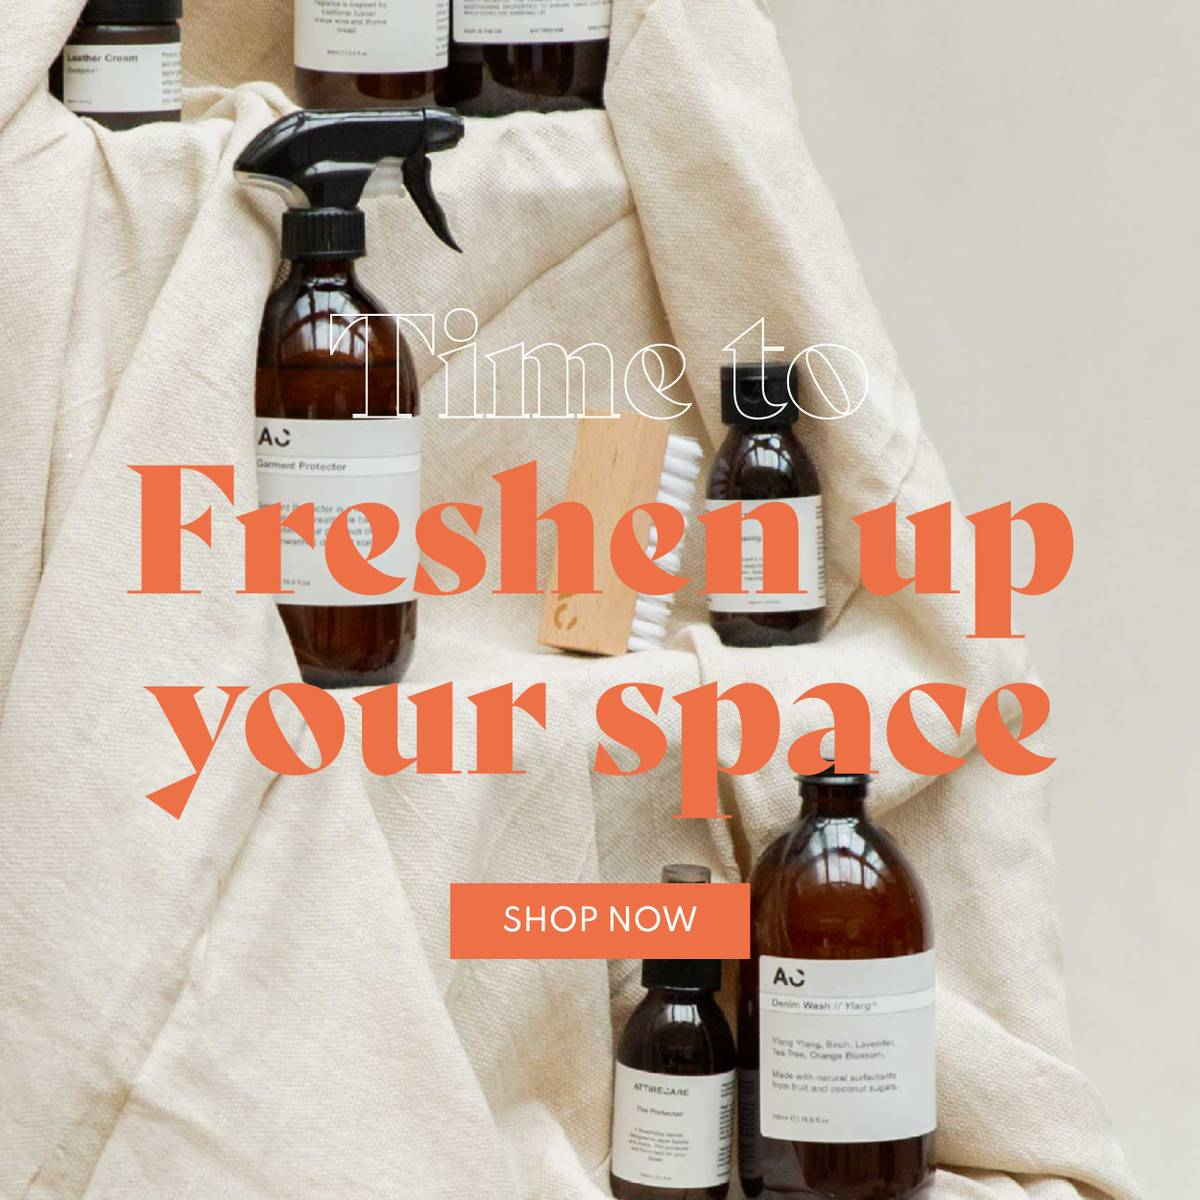 Cleaning & storage - Freshen your space